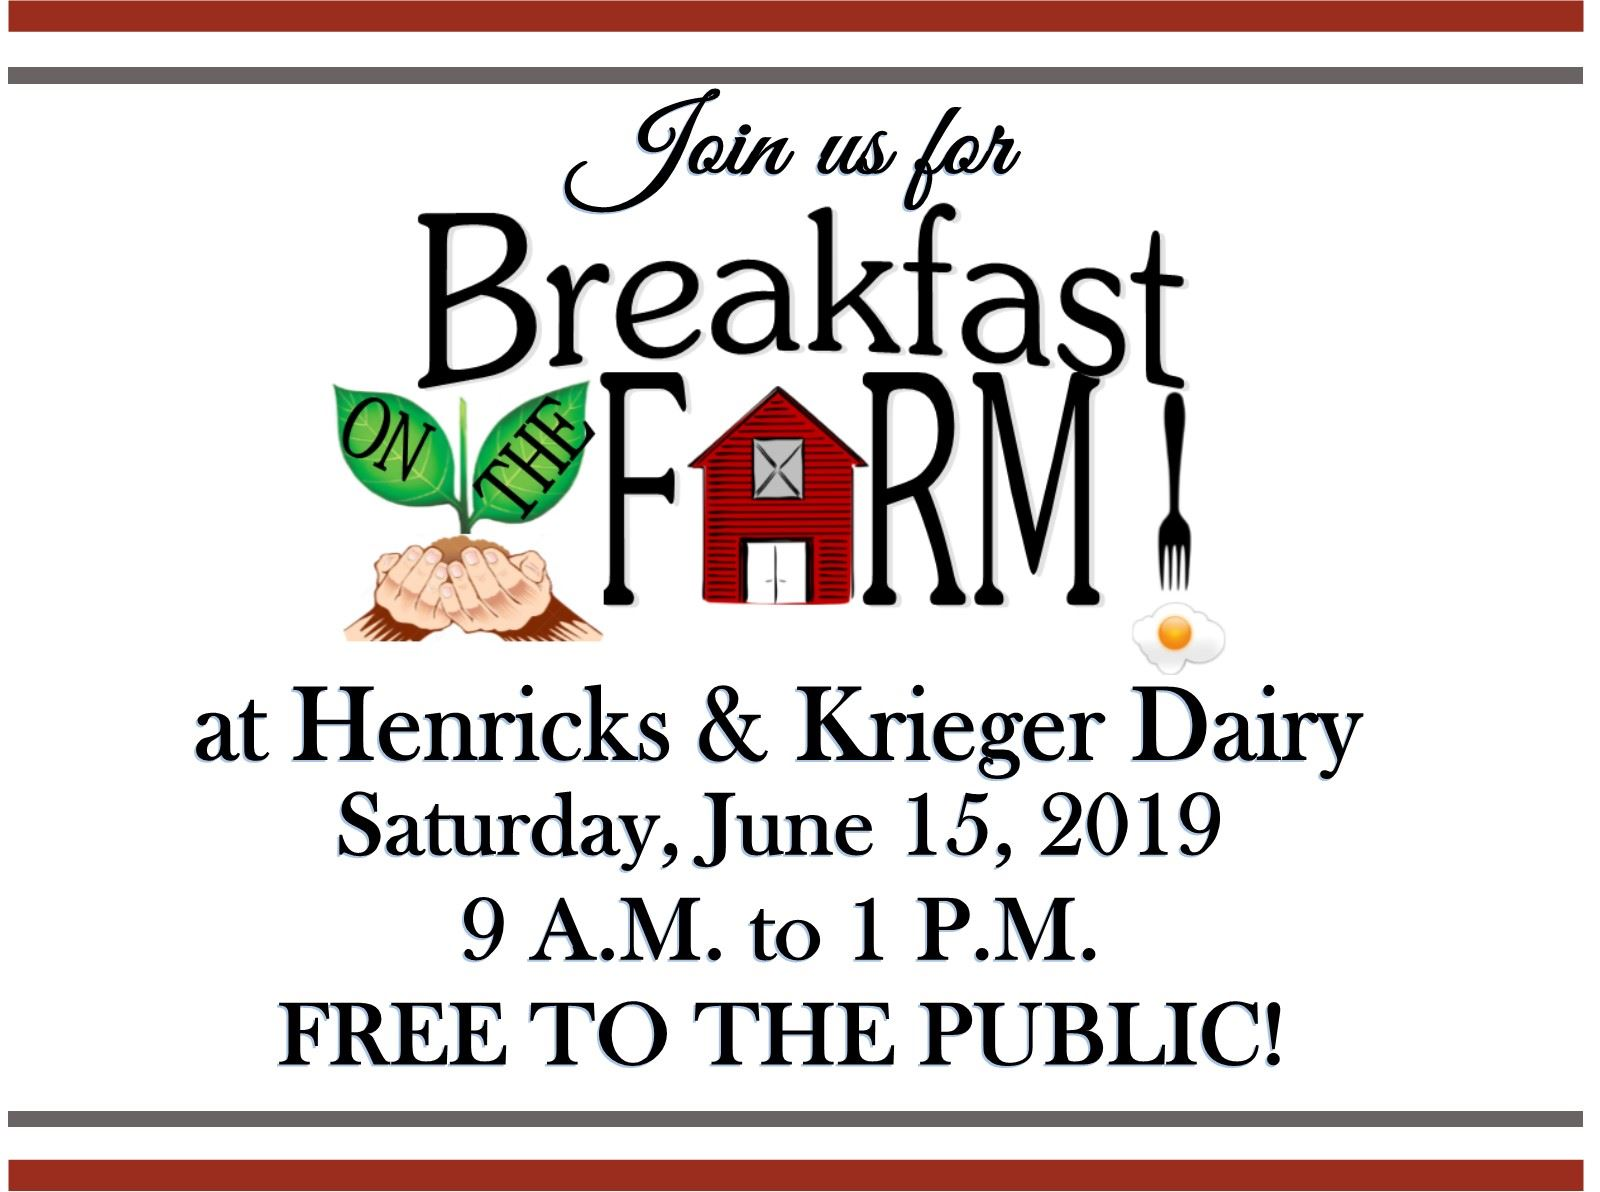 join us for breakfast on the farm 2019 at henricks & krieger dairy